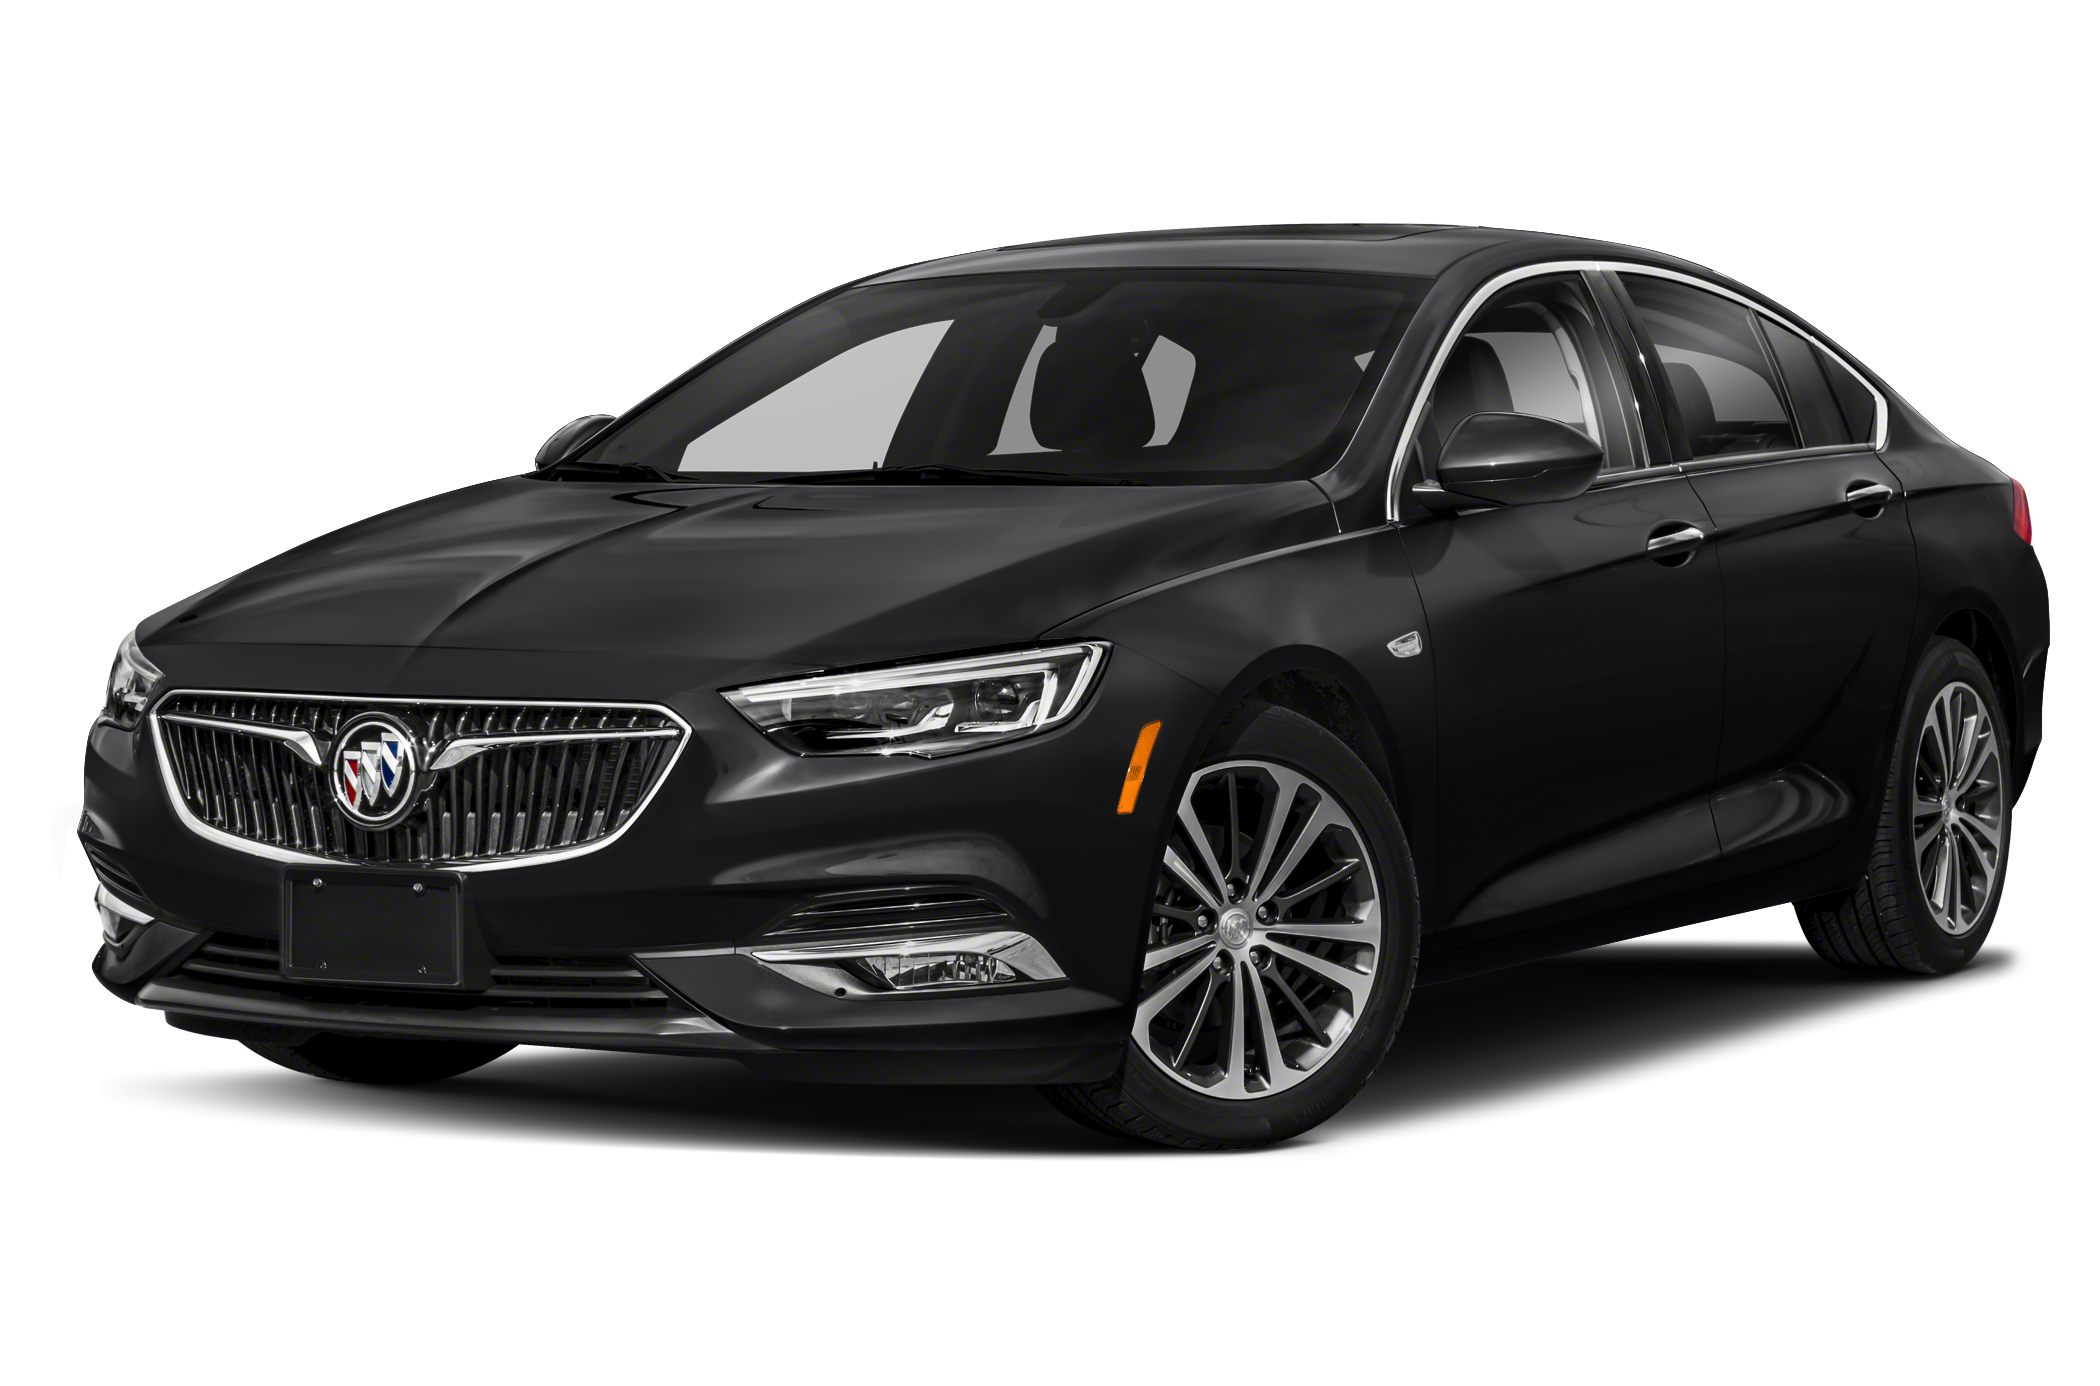 2020 Buick Regal Sportback Pictures 2021 Buick Verano Weight, Maintenance Schedule, Awd